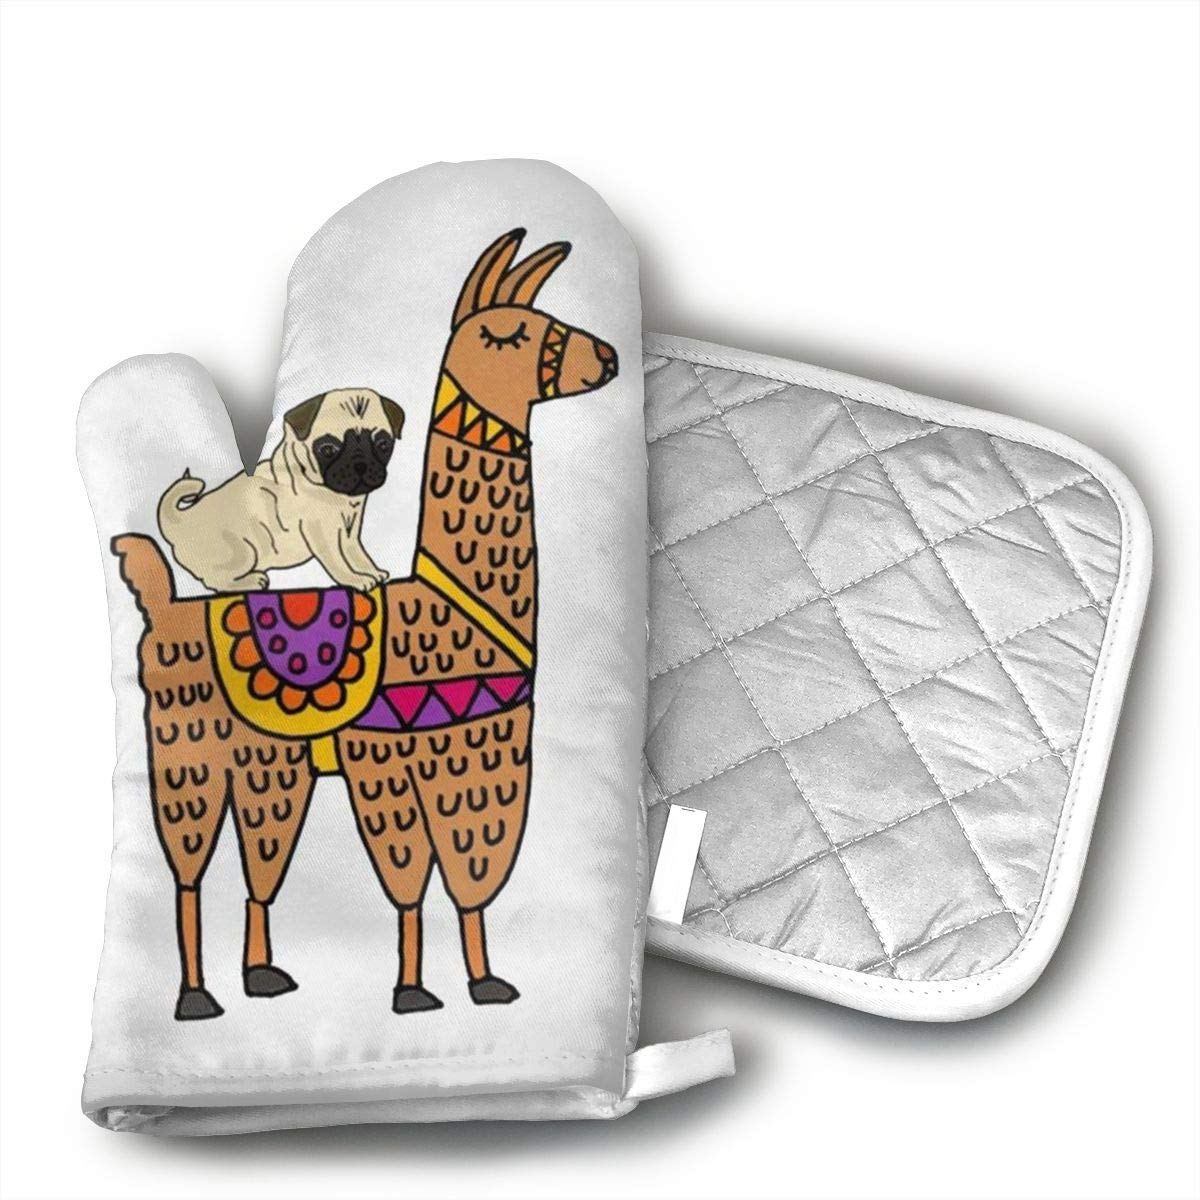 Wiqo9 Cute Pug Dog Riding On Llama Oven Mitts and Pot Holders Kitchen Mitten Cooking Gloves,Cooking, Baking, BBQ.